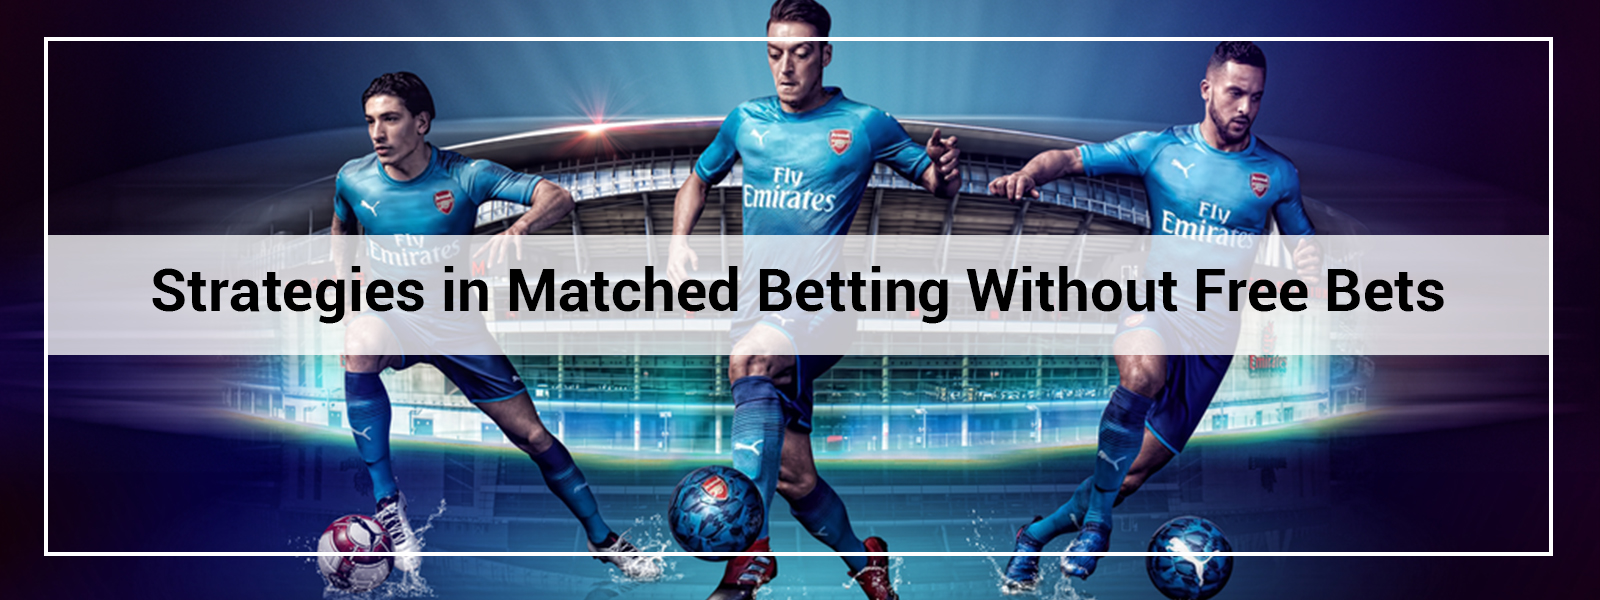 Strategies in Matched Betting Without Free Bets